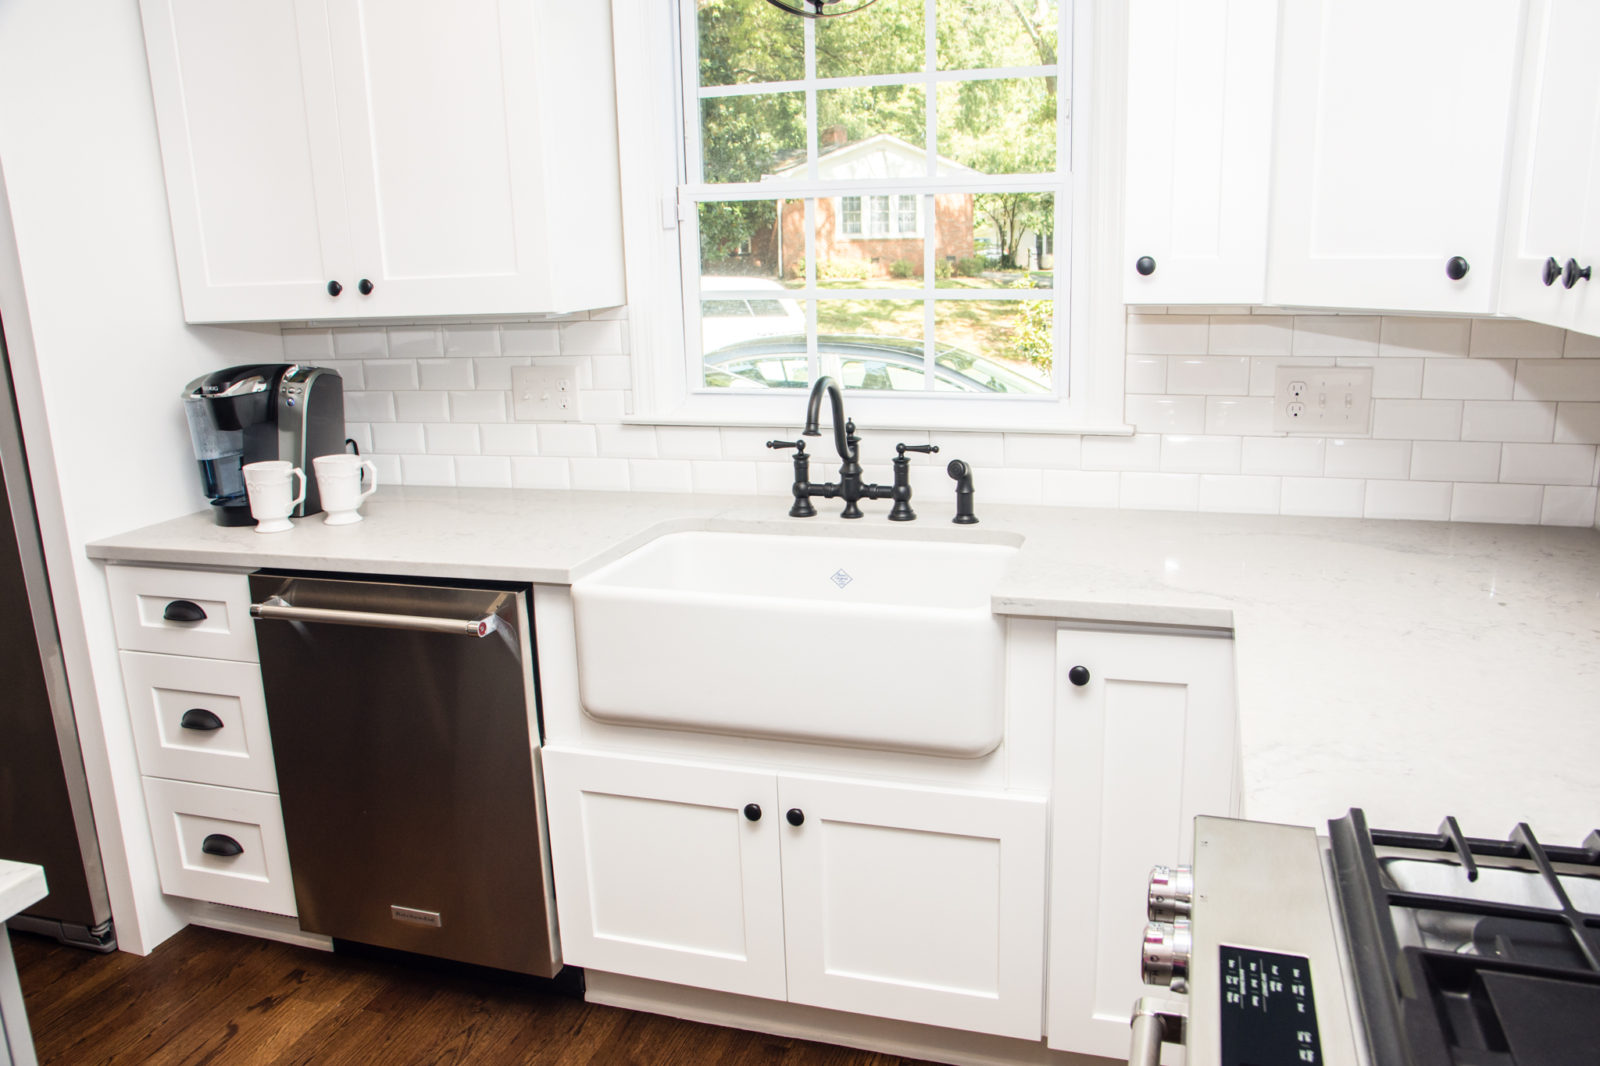 Murray Hill kitchen with dishwasher and white cabinets